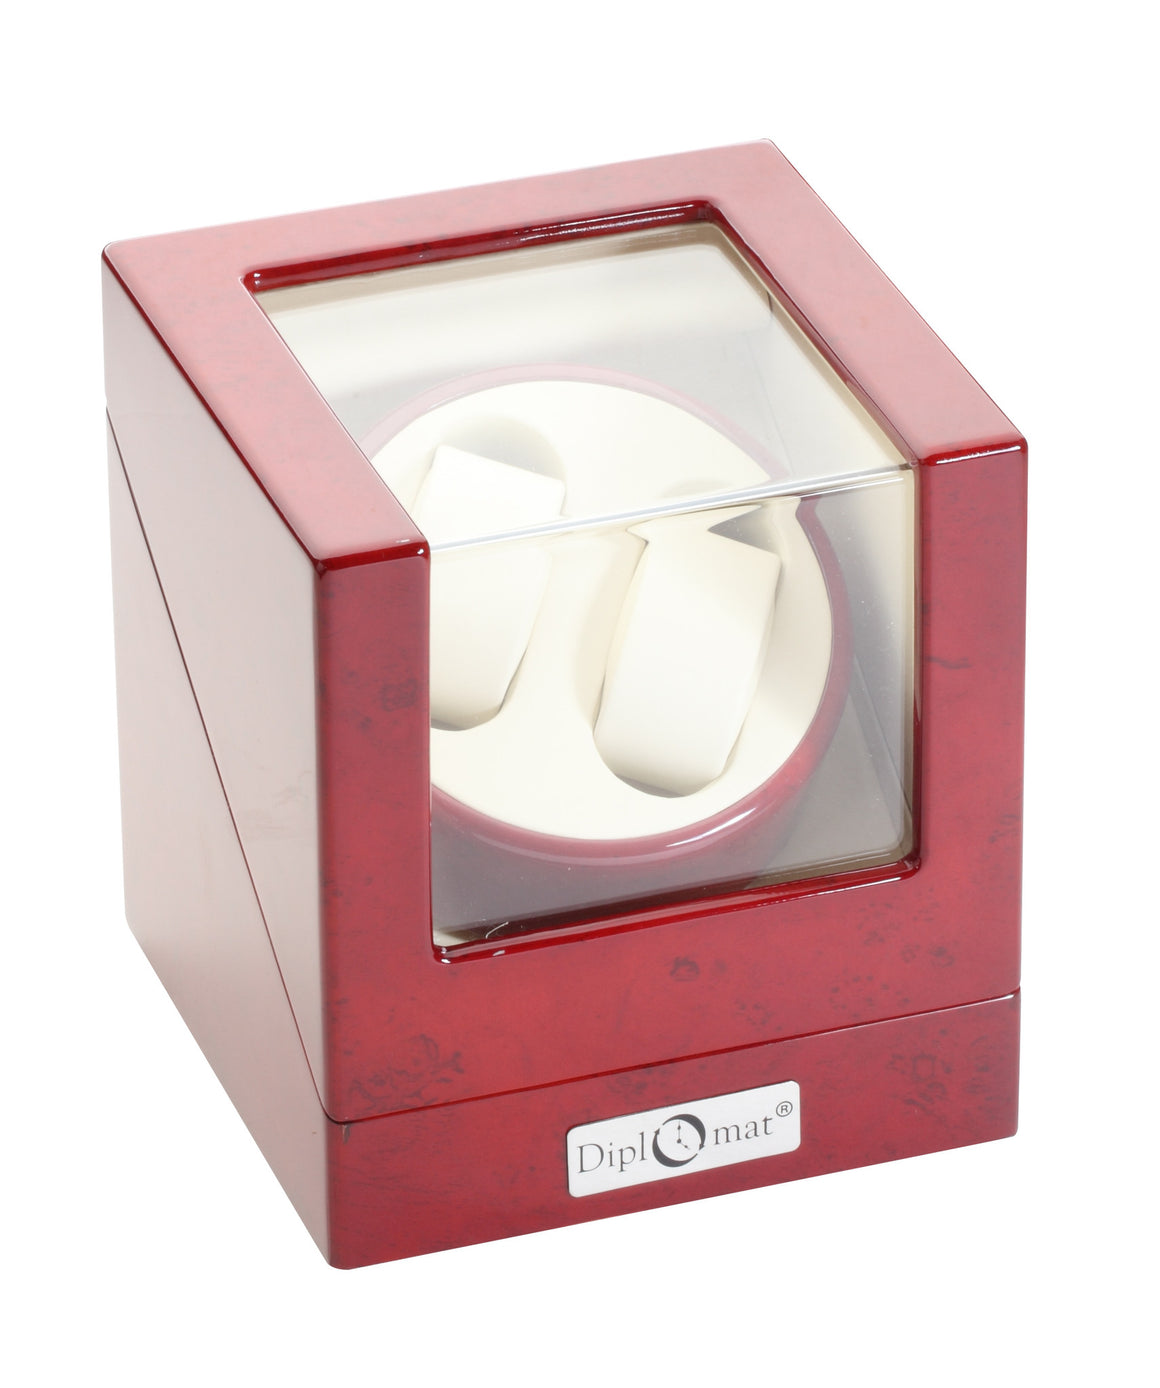 Diplomat Rosewood Double Watch Winder - Watch Box Co. - 2